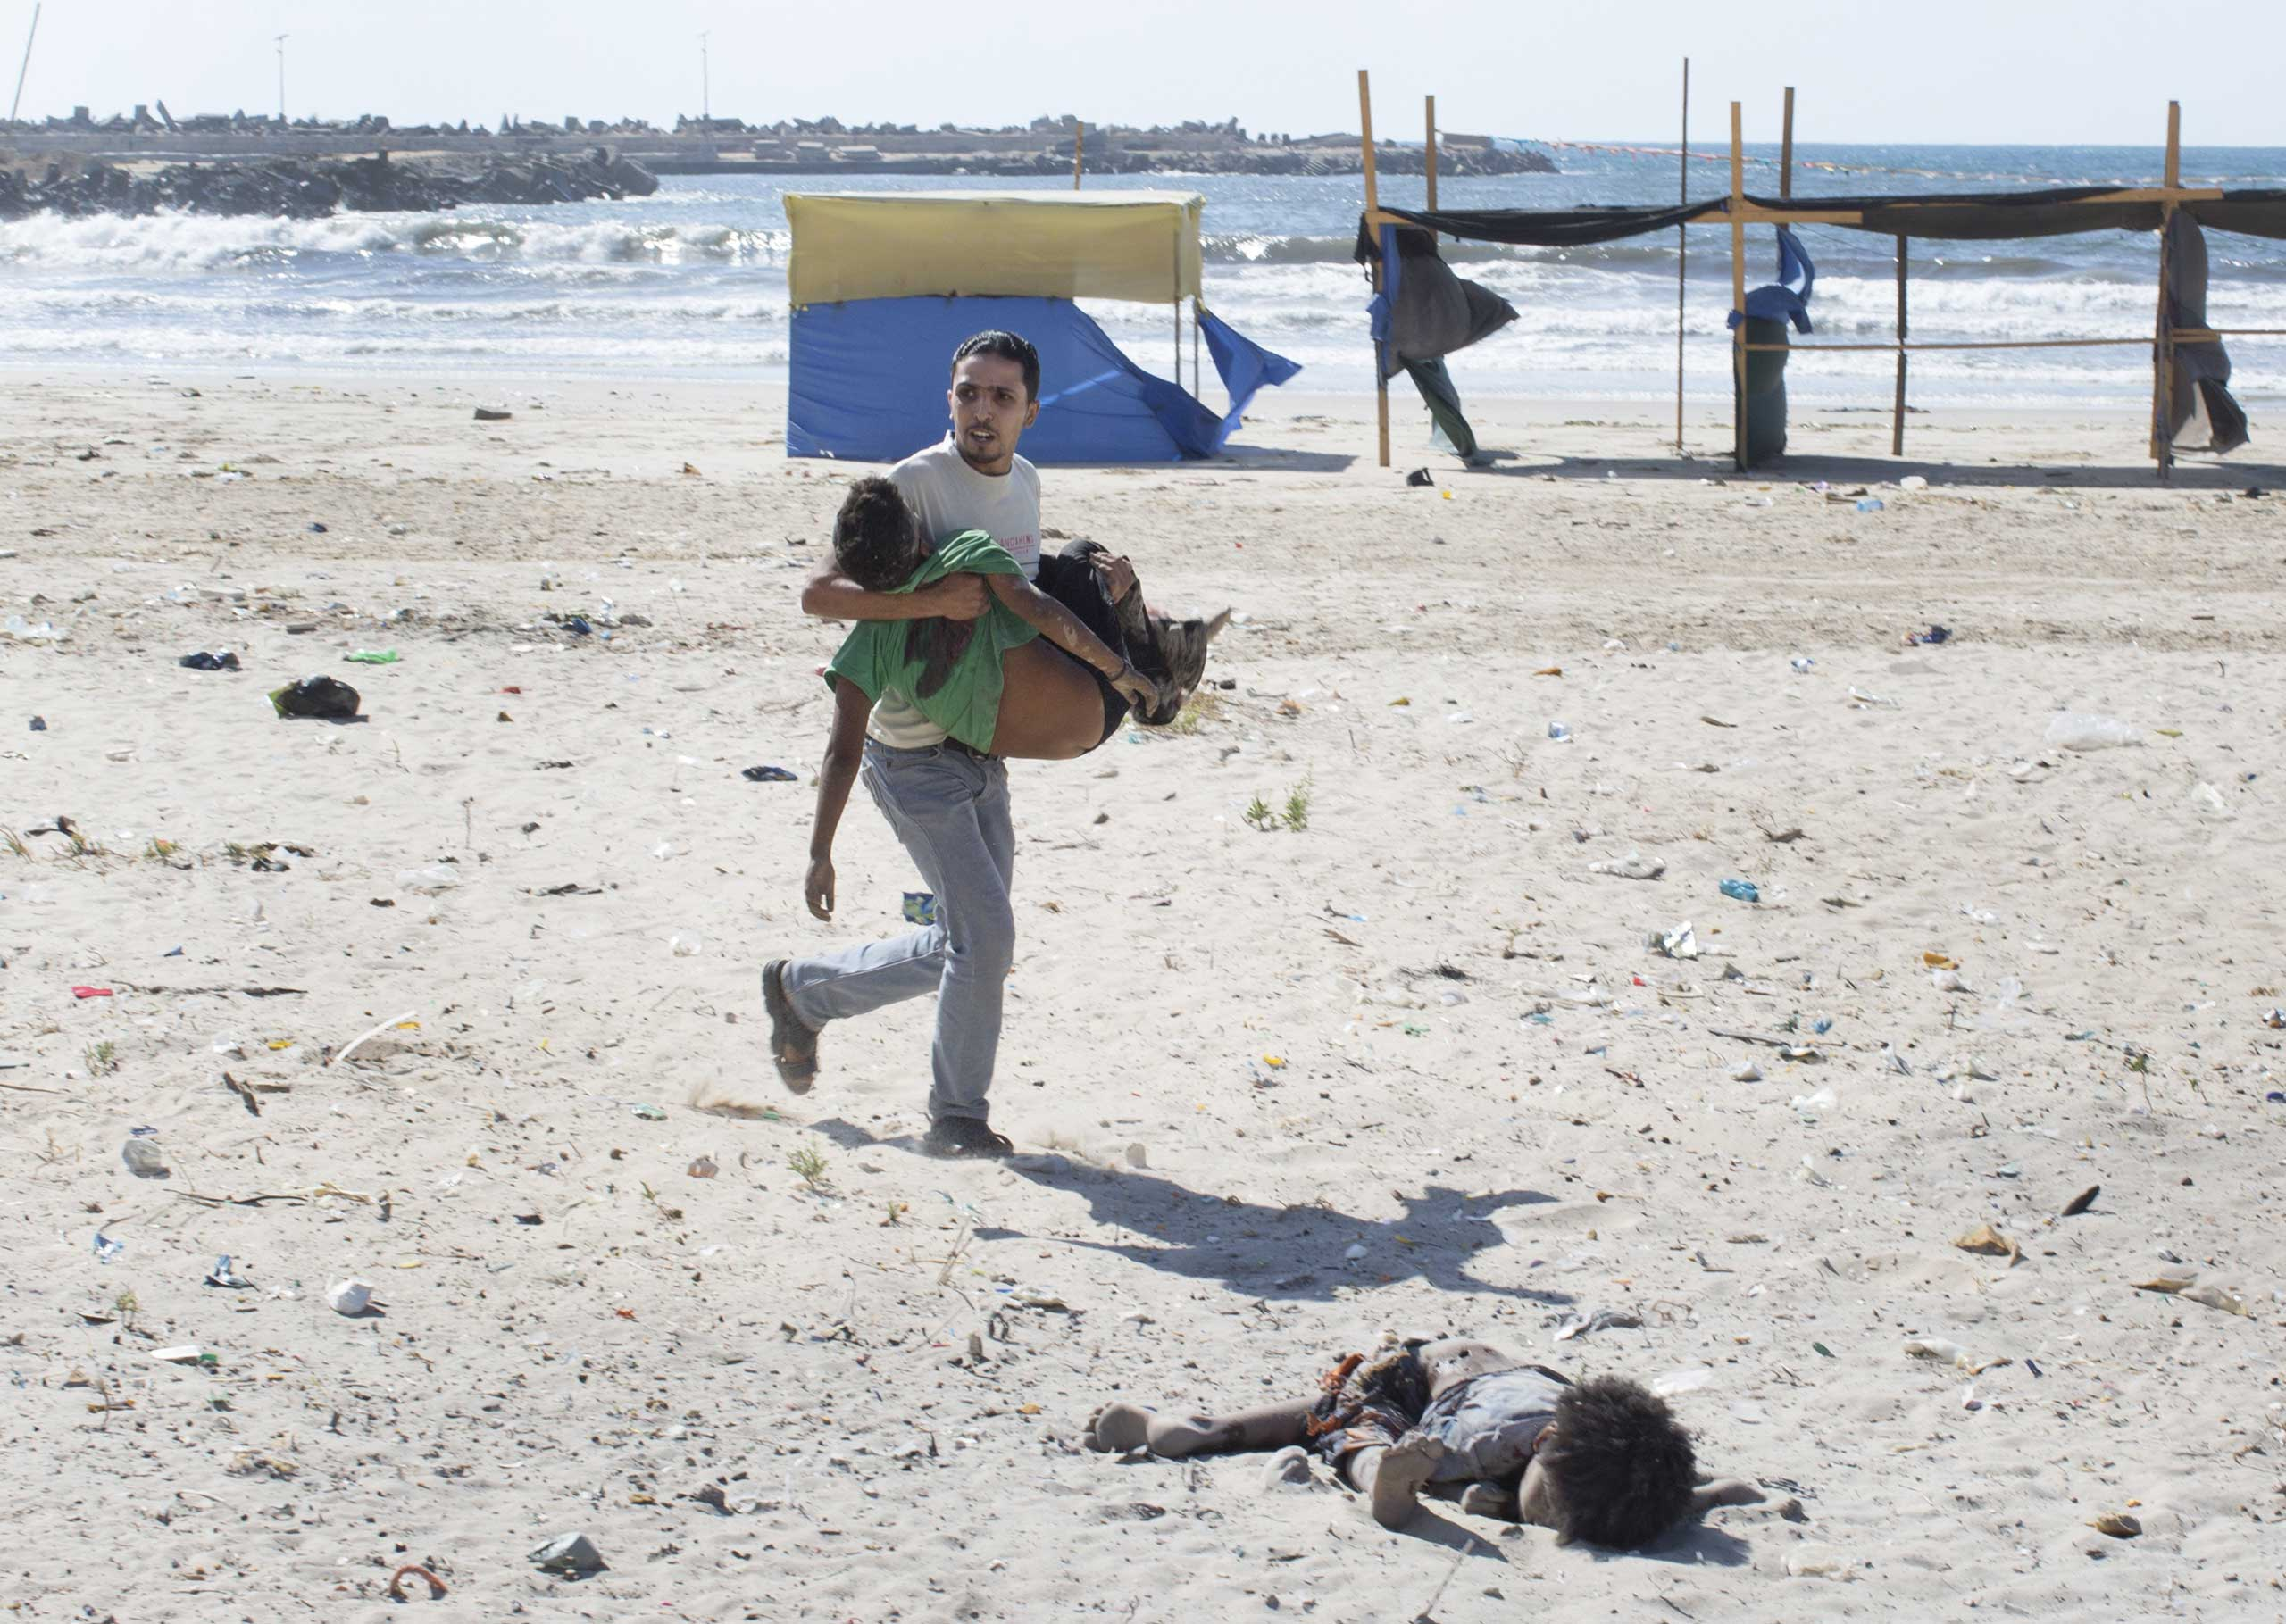 A man carries a child as another lies dead after two explosions on a beach in Gaza,  July 16, 2014.